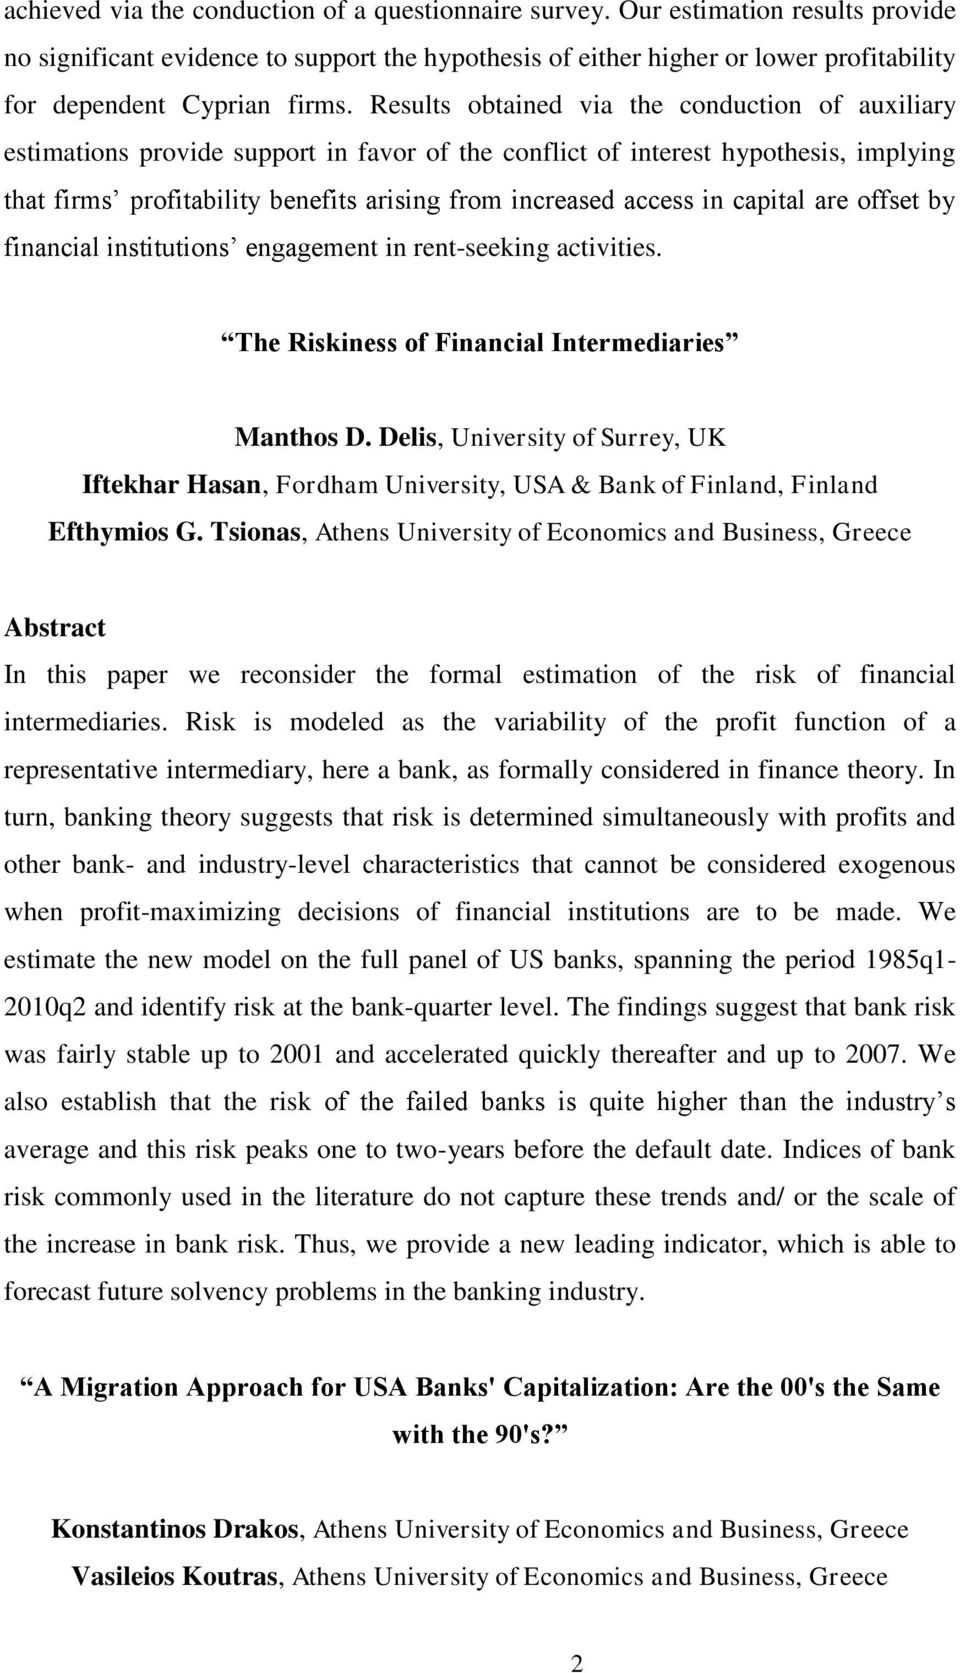 Results obtained via the conduction of auxiliary estimations provide support in favor of the conflict of interest hypothesis, implying that firms profitability benefits arising from increased access